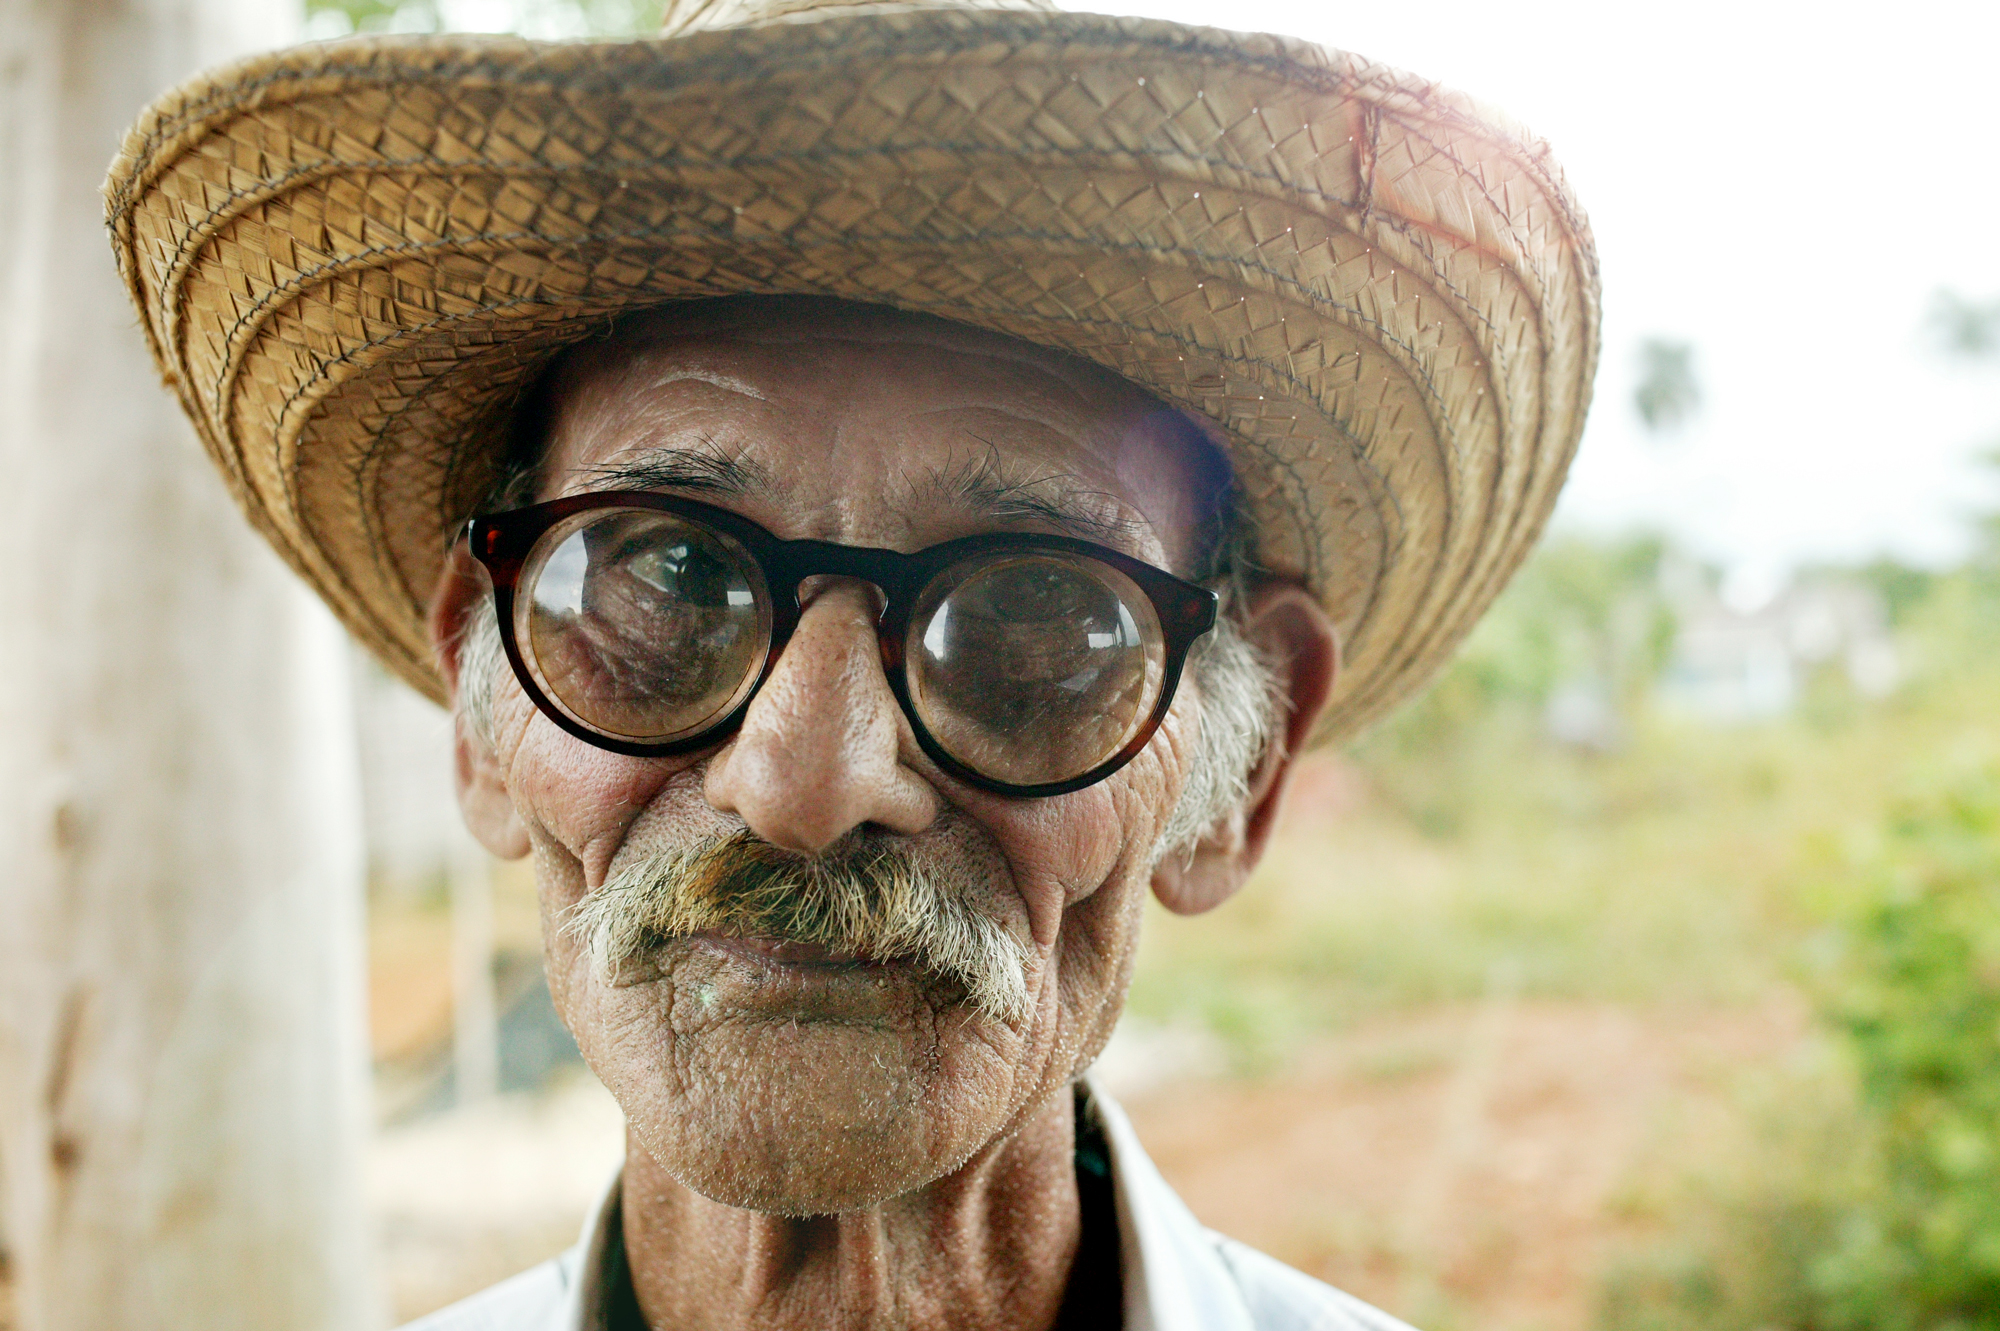 portrait of cuban farmer with thick glasses and straw hat